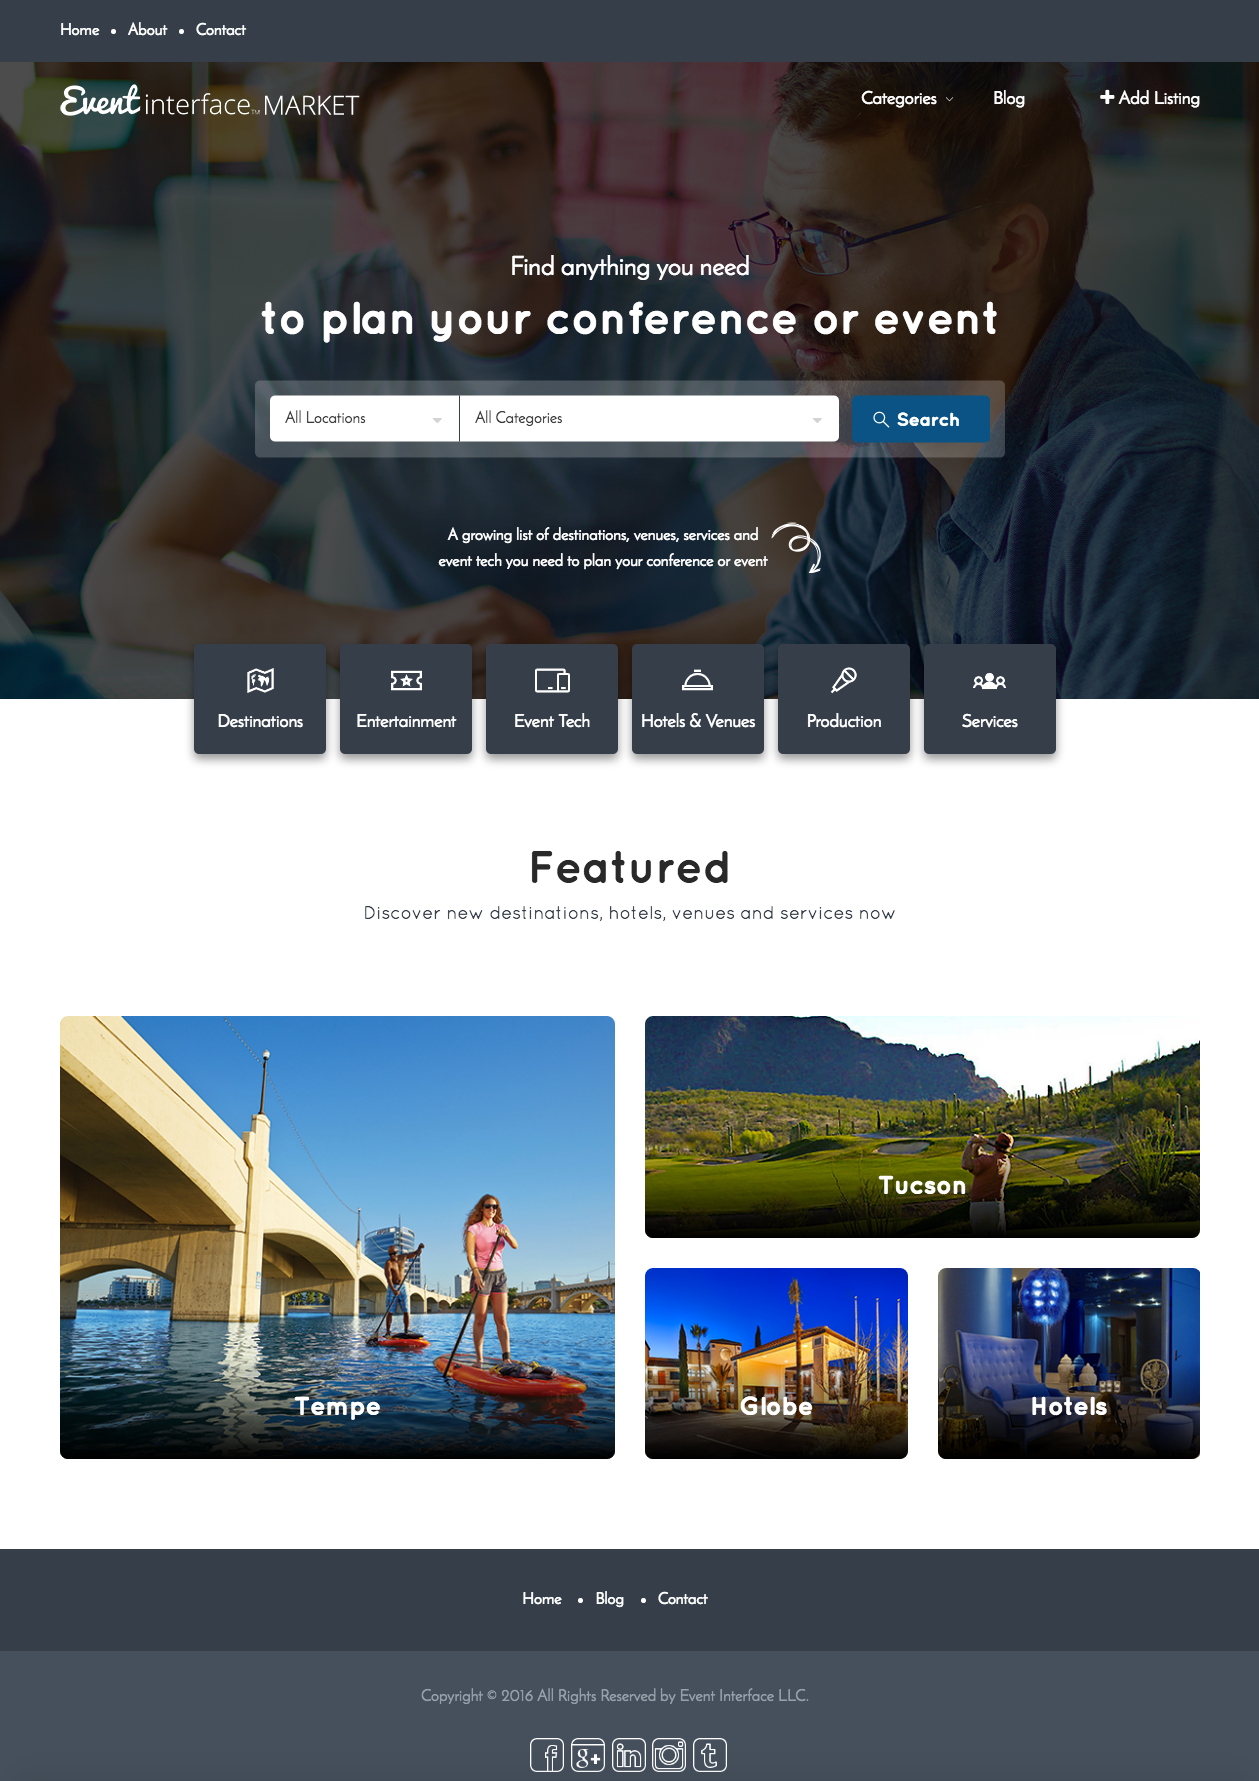 Eventinterface Market, free tools for meeting and event planners